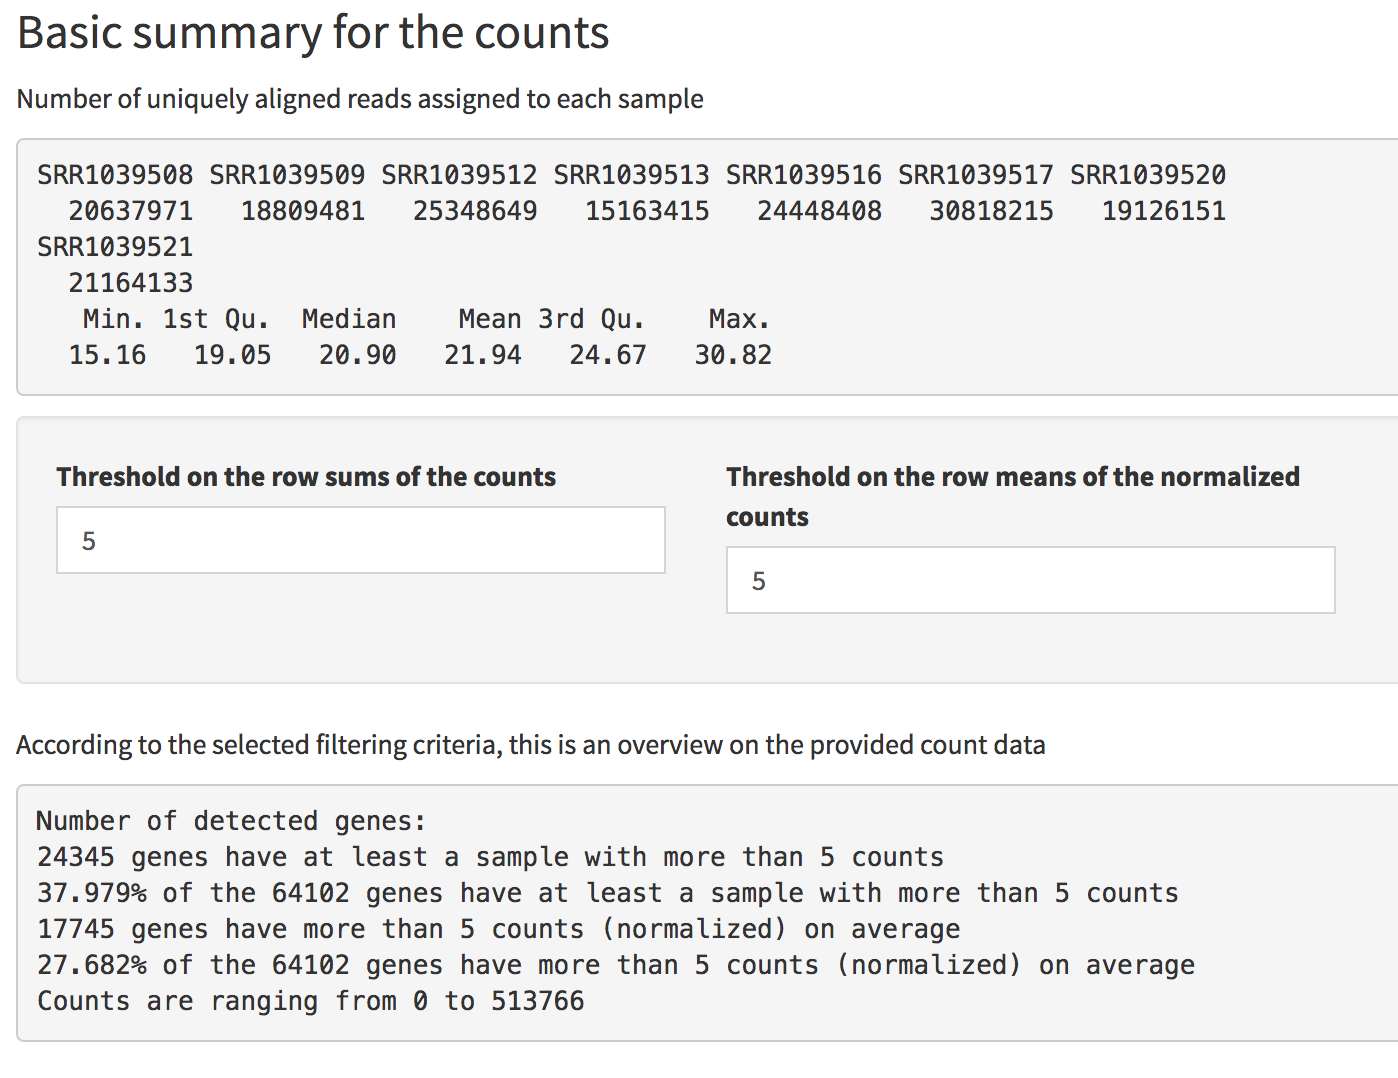 Screenshot of the Basic Summary of the counts in the Data Overview panel. General information are provided, together with an overview on detected genes according to different filtering criteria.